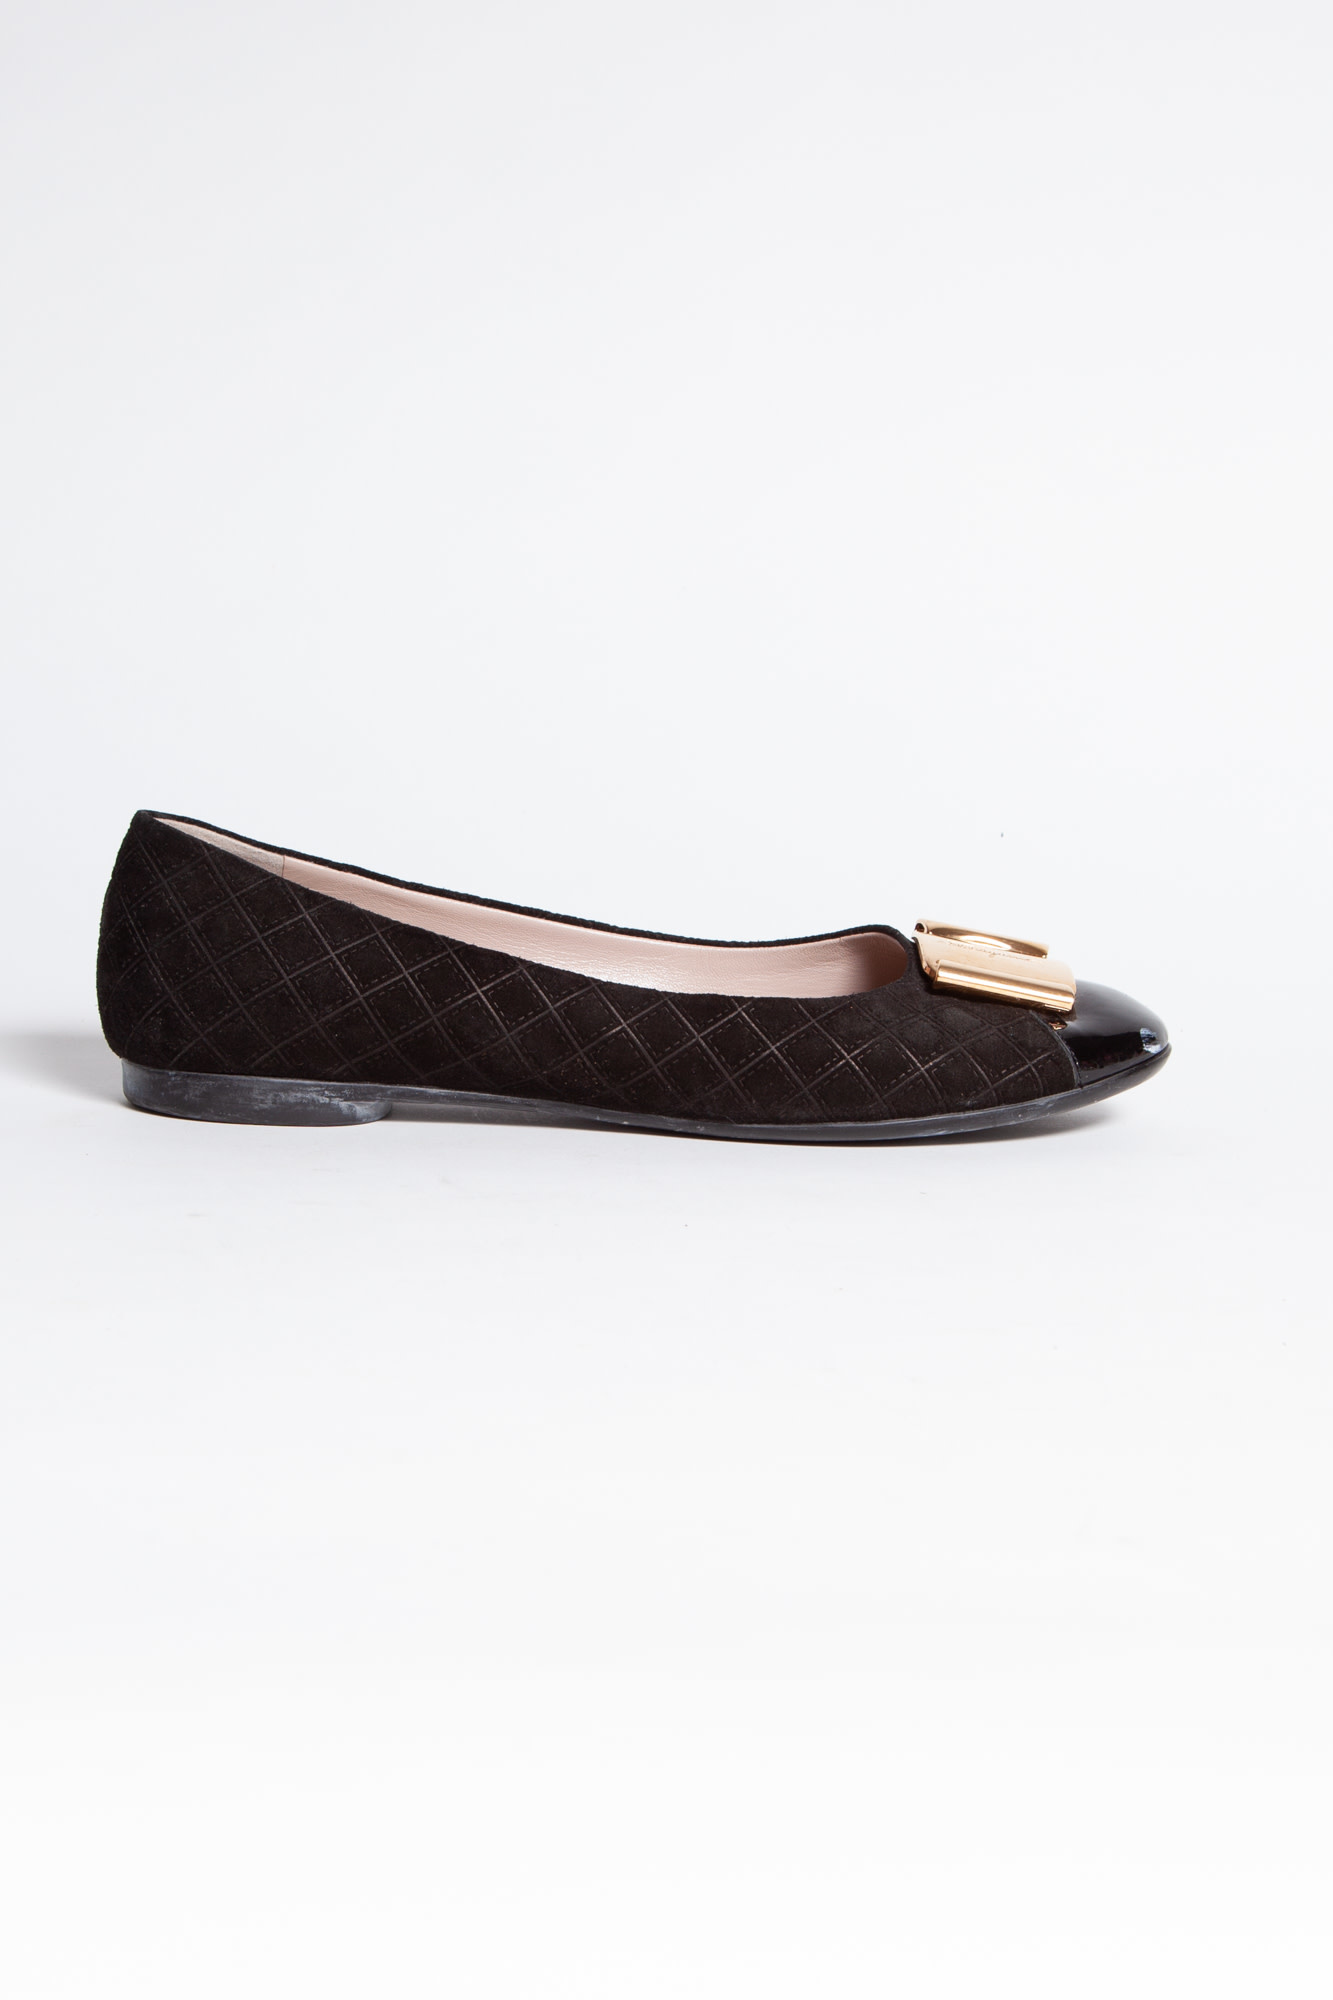 Salvatore Ferragamo BLACK FLATS WITH GOLD BUCKLE